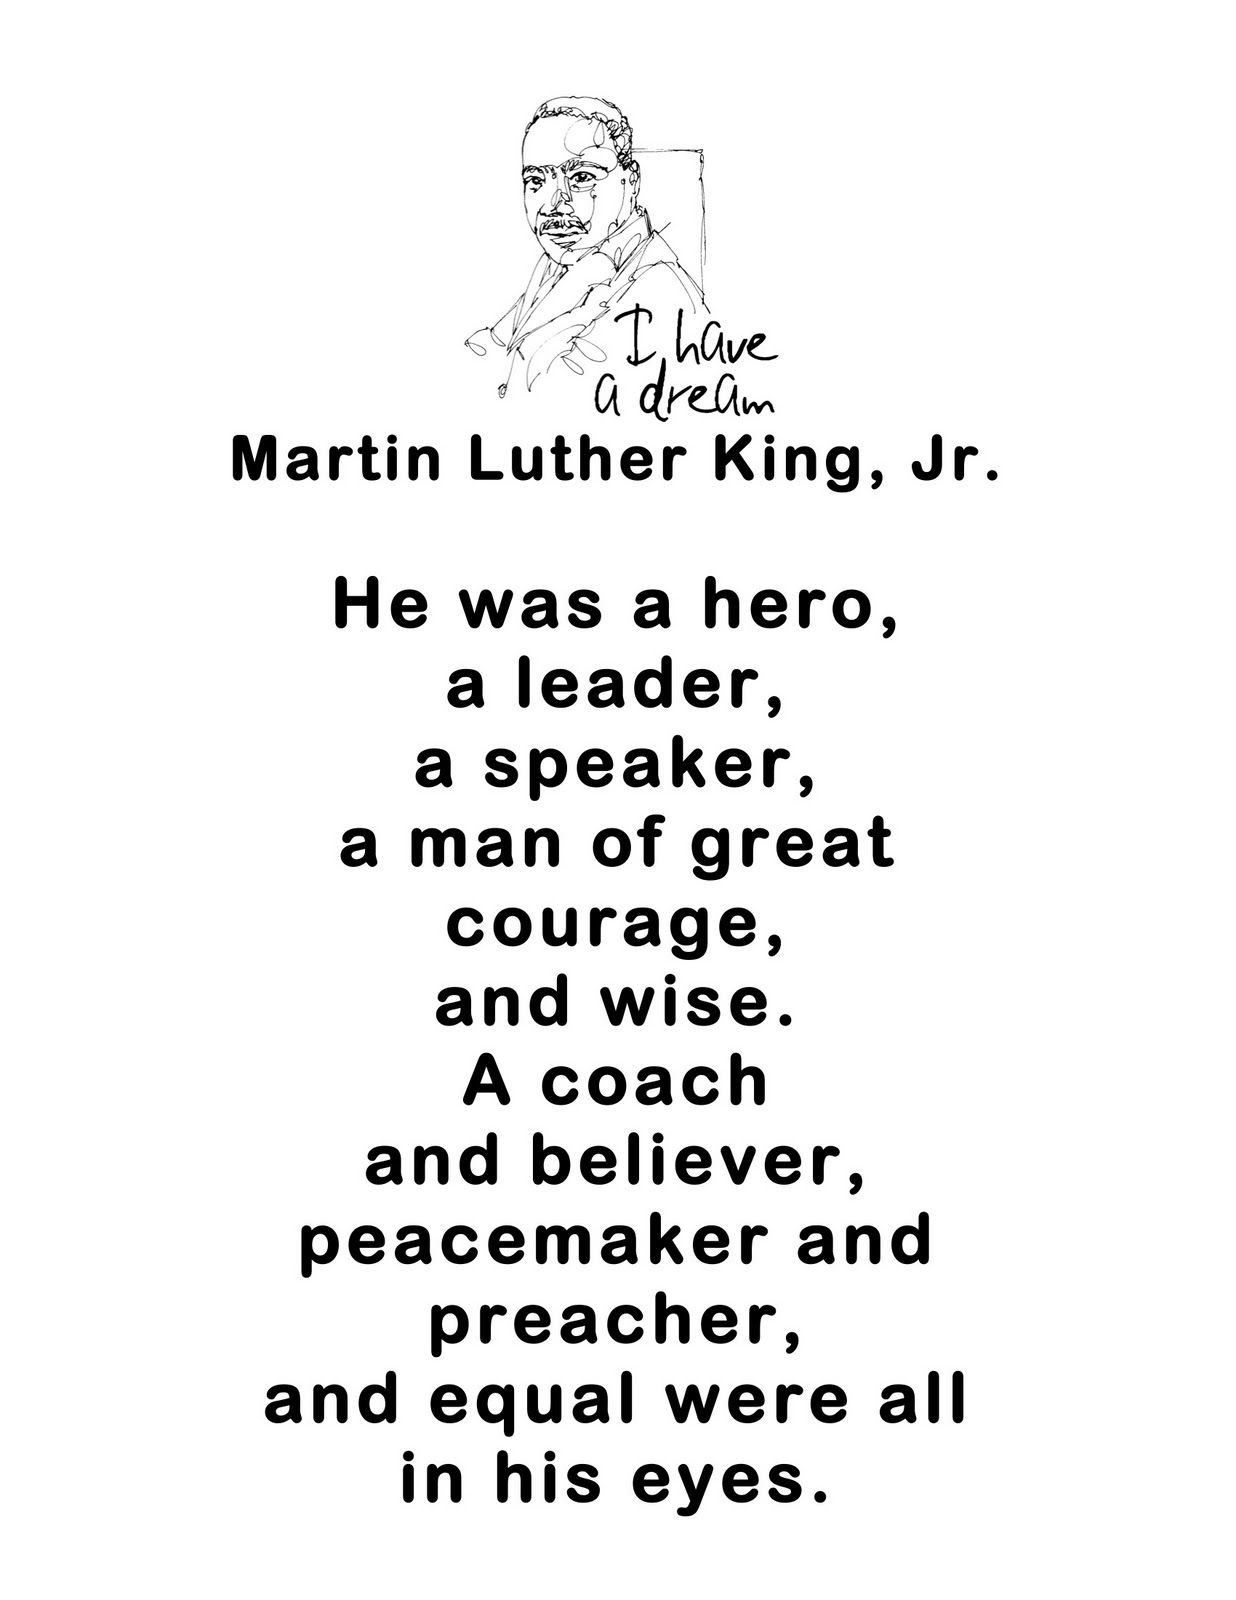 Martin Luther King Jr Poem And Craft Update 1 20